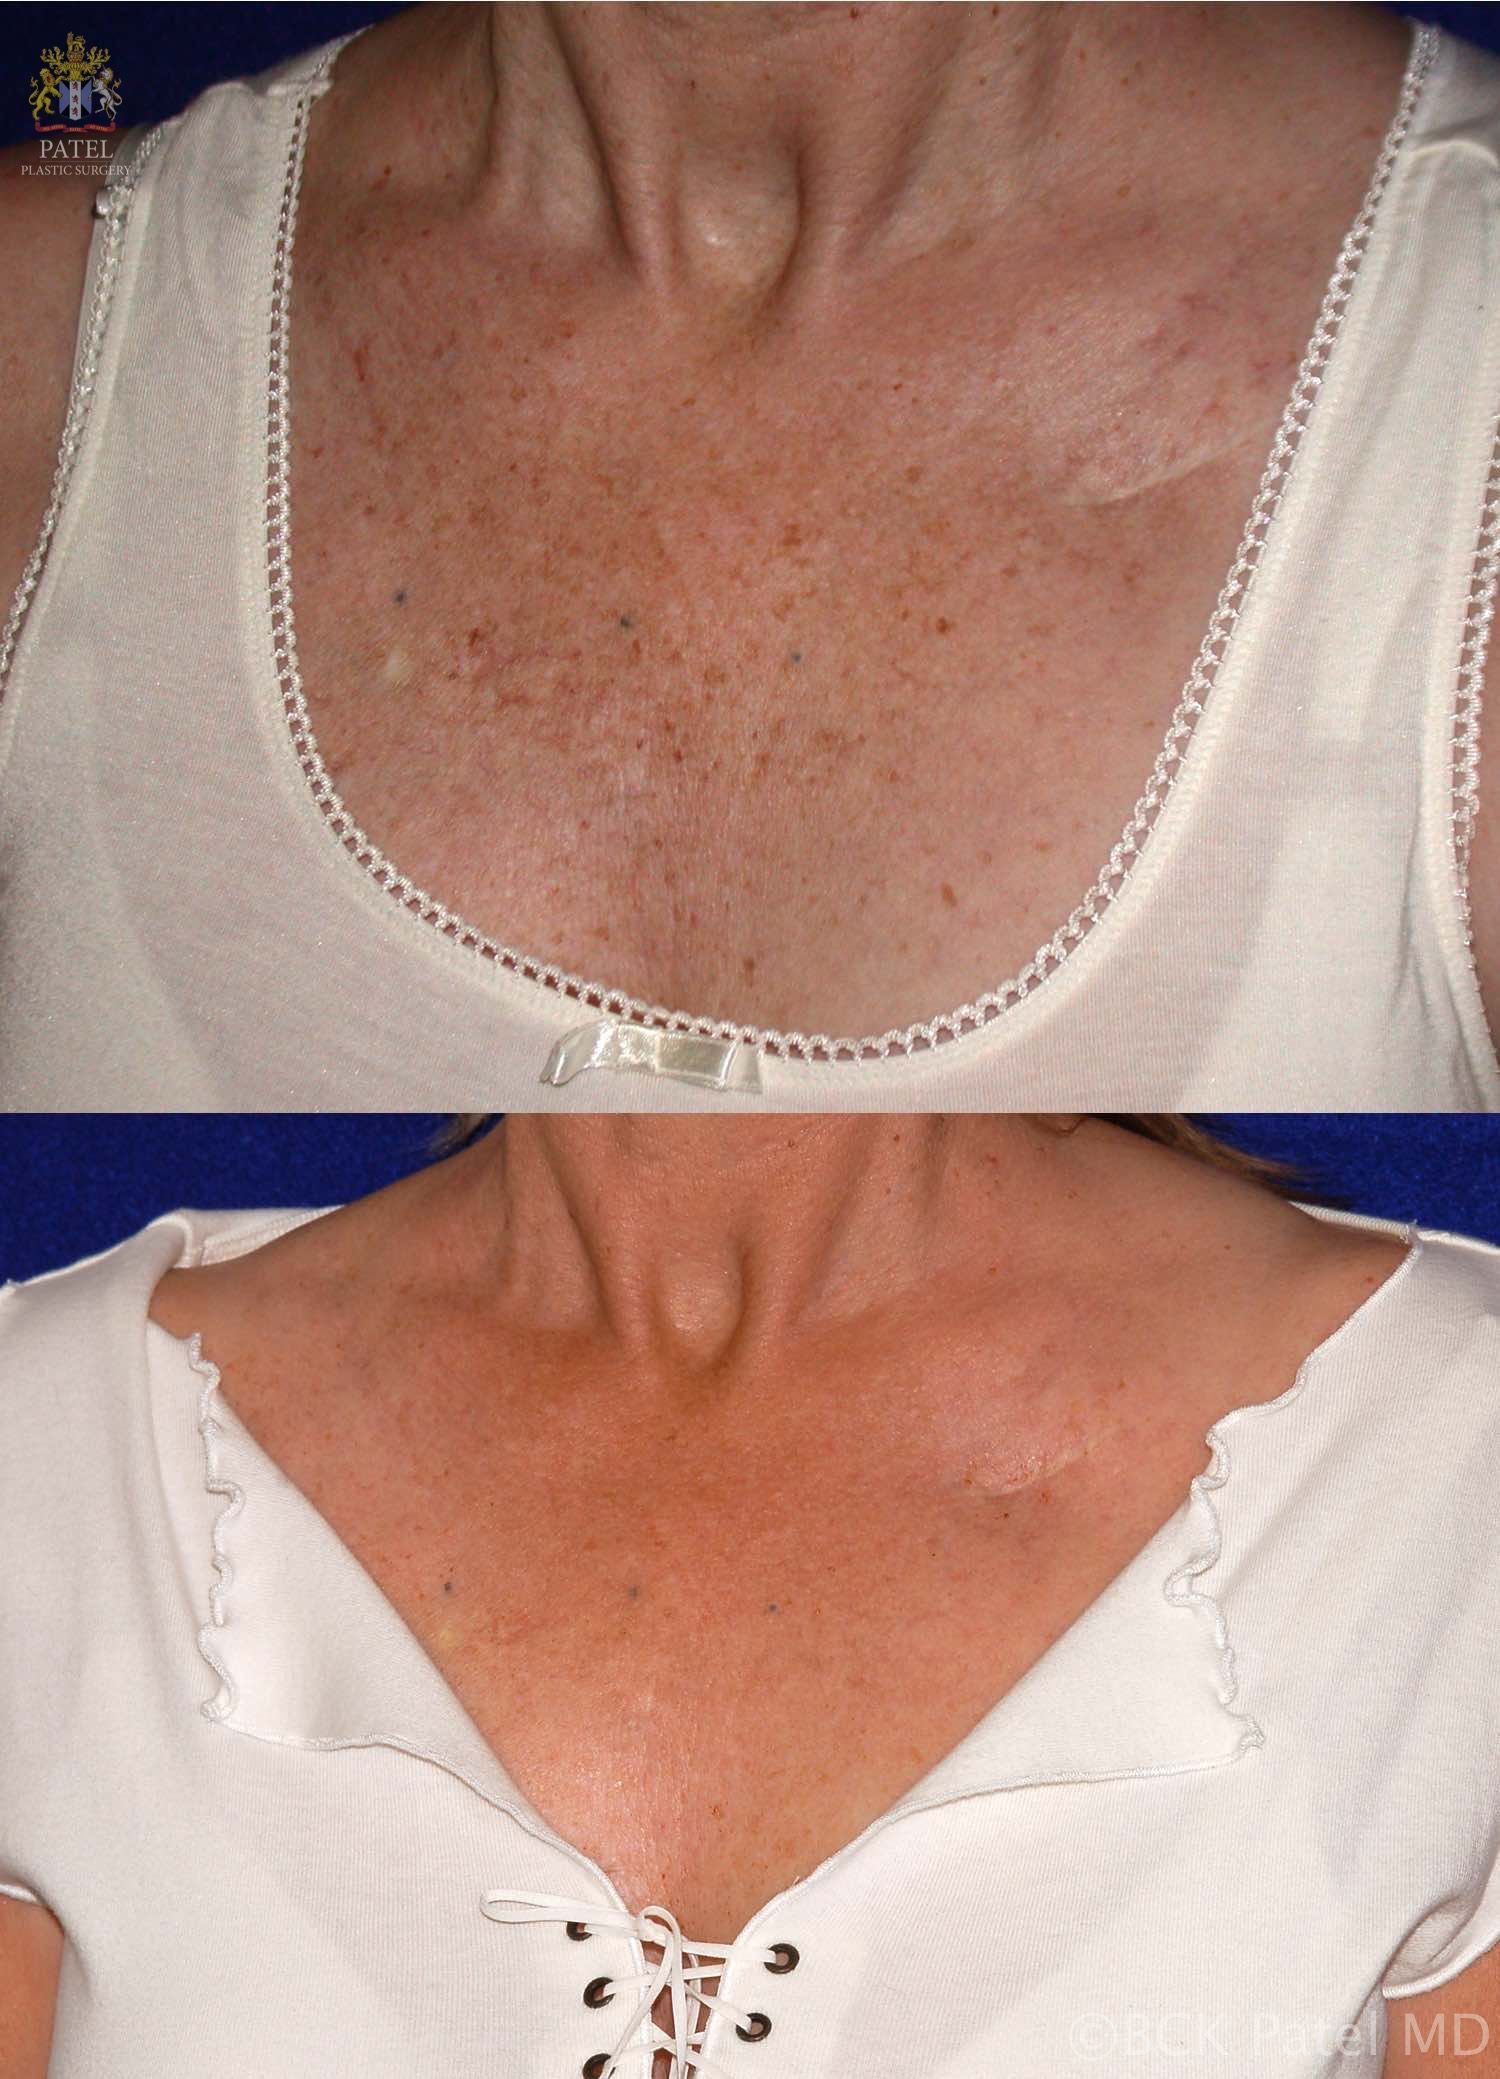 englishsurgeon.com Results of neck fotofacial treatments by Dr. BCK Patel MD, FRCS, Salt Lake City, St George